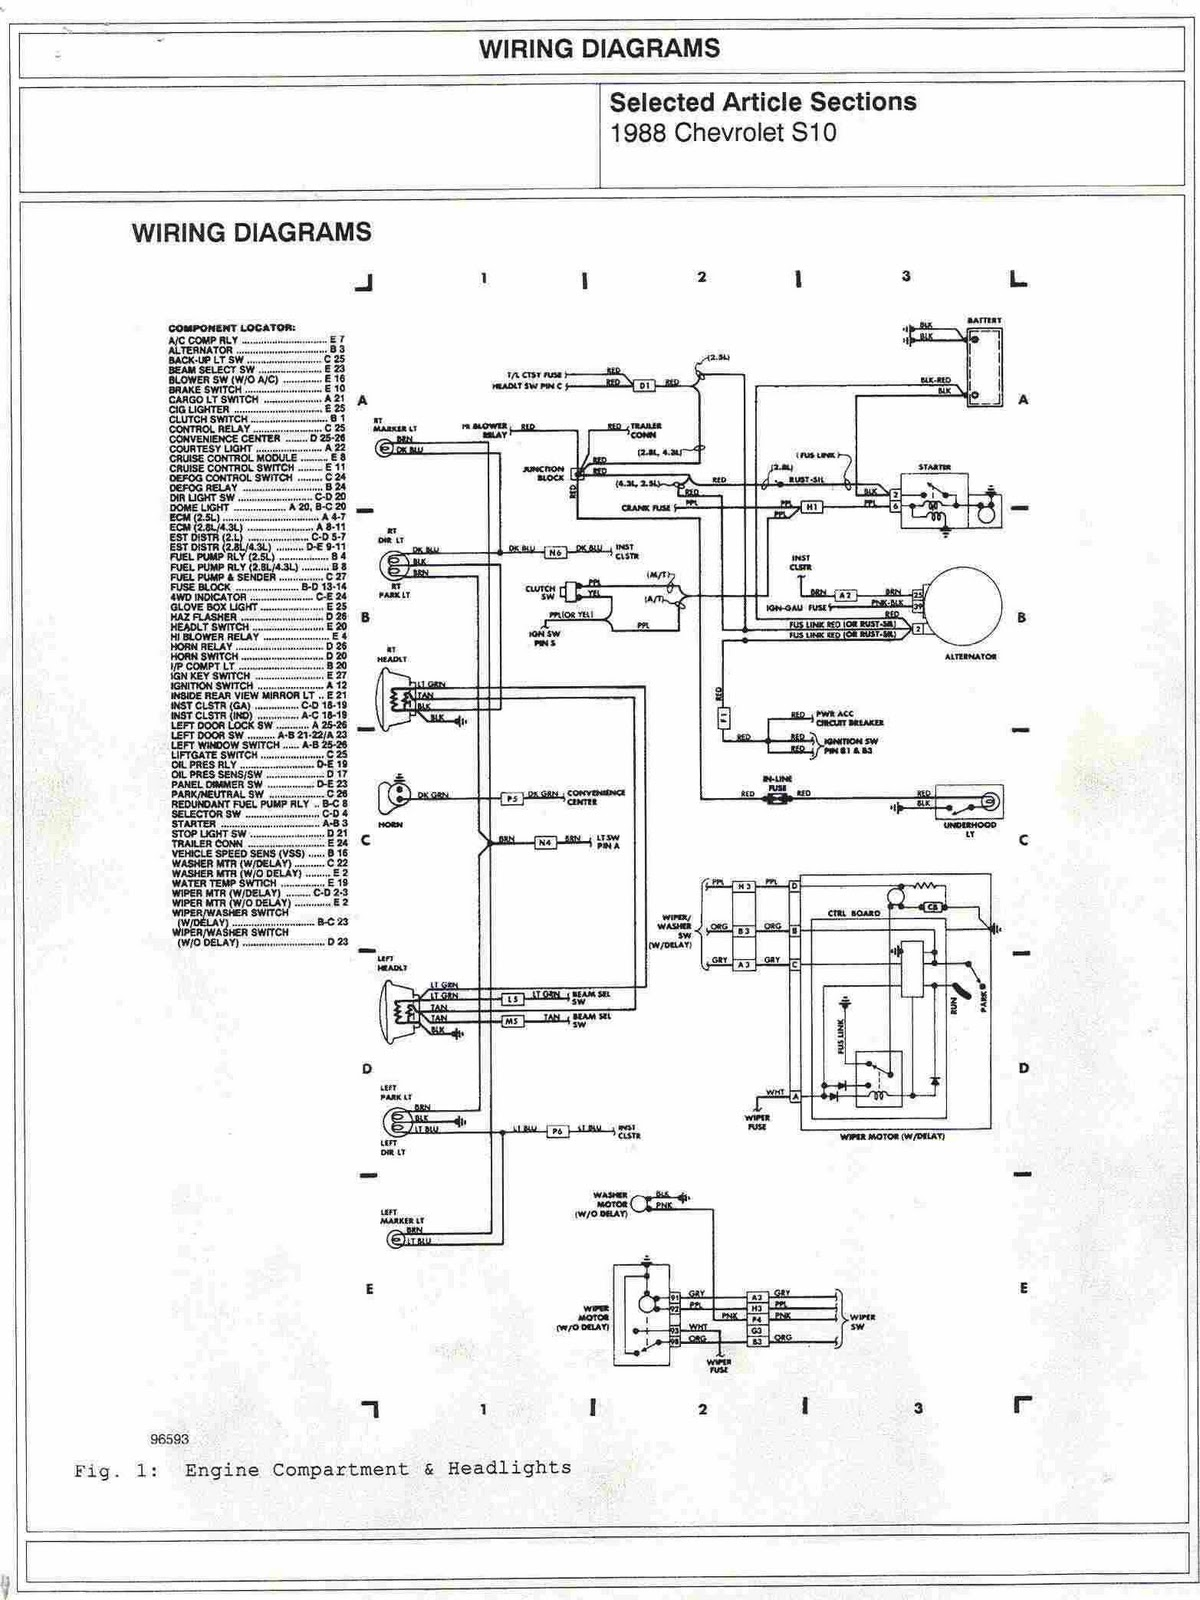 1988+Chevrolet+S10+Engine+Compartment+and+Headlights+Wiring+Diagrams 85 chevy s10 wiring diagram wiring diagram simonand 1990 s10 wiring diagram at bayanpartner.co